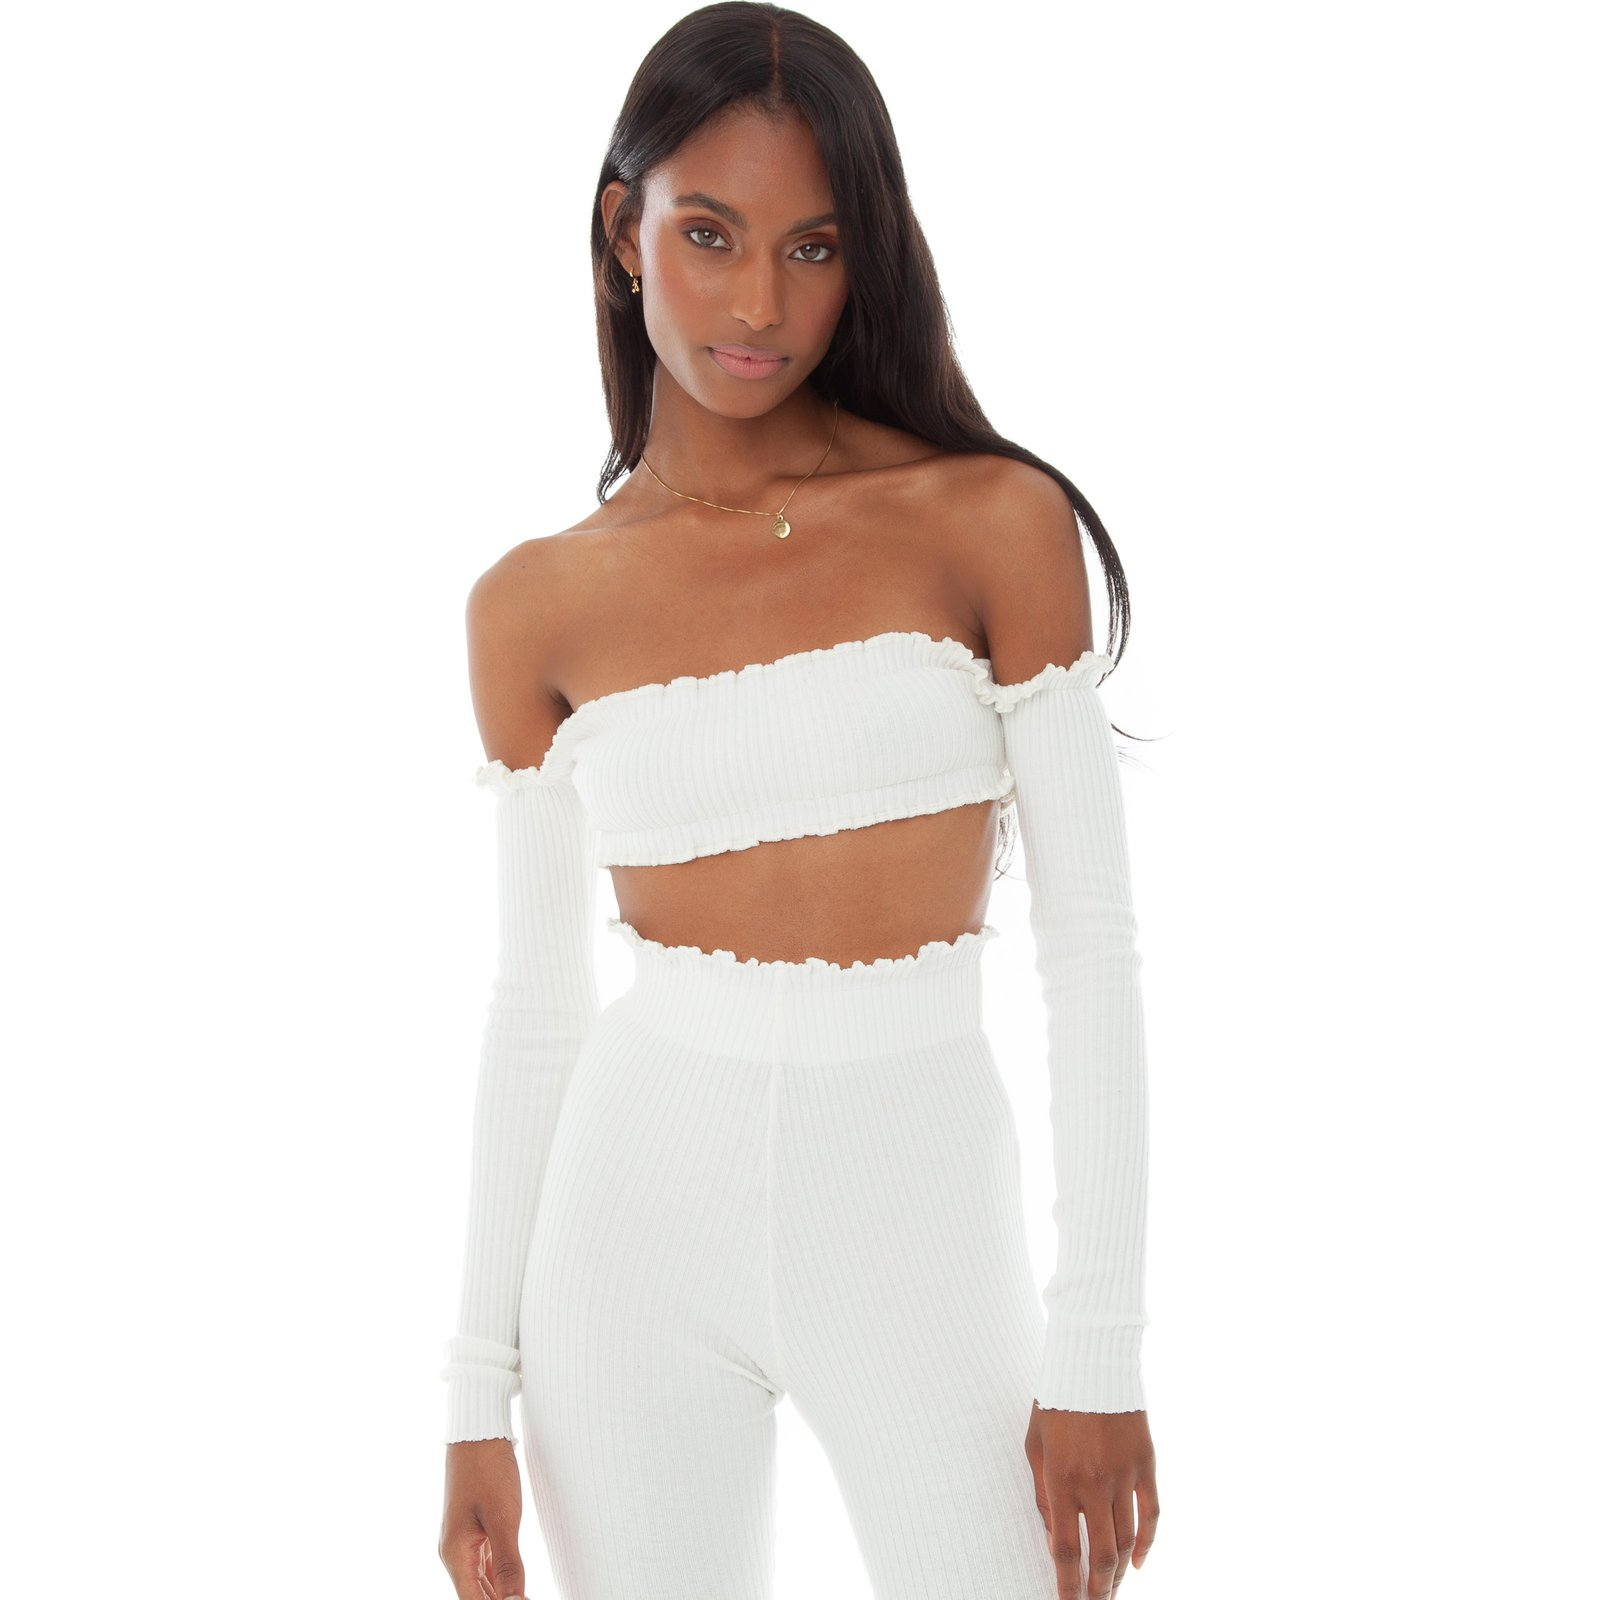 Tiiu Top by Are You Am I, available on areyouami.com for $120 Kendall Jenner Top SIMILAR PRODUCT